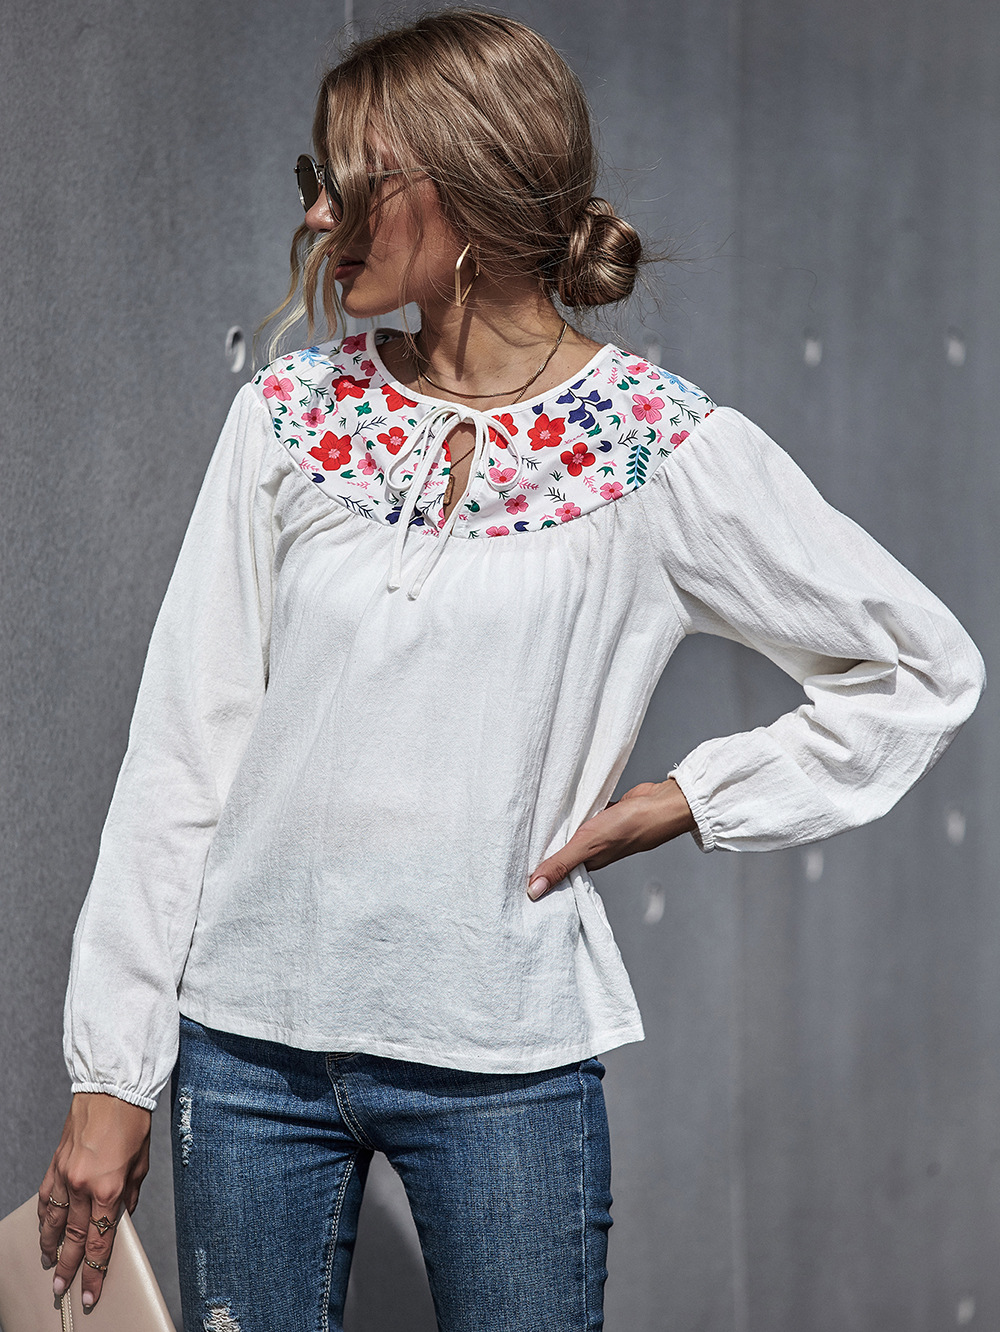 autumn and winter cotton and linen embroidery slim top linen retro long-sleeved shirt NSDF338